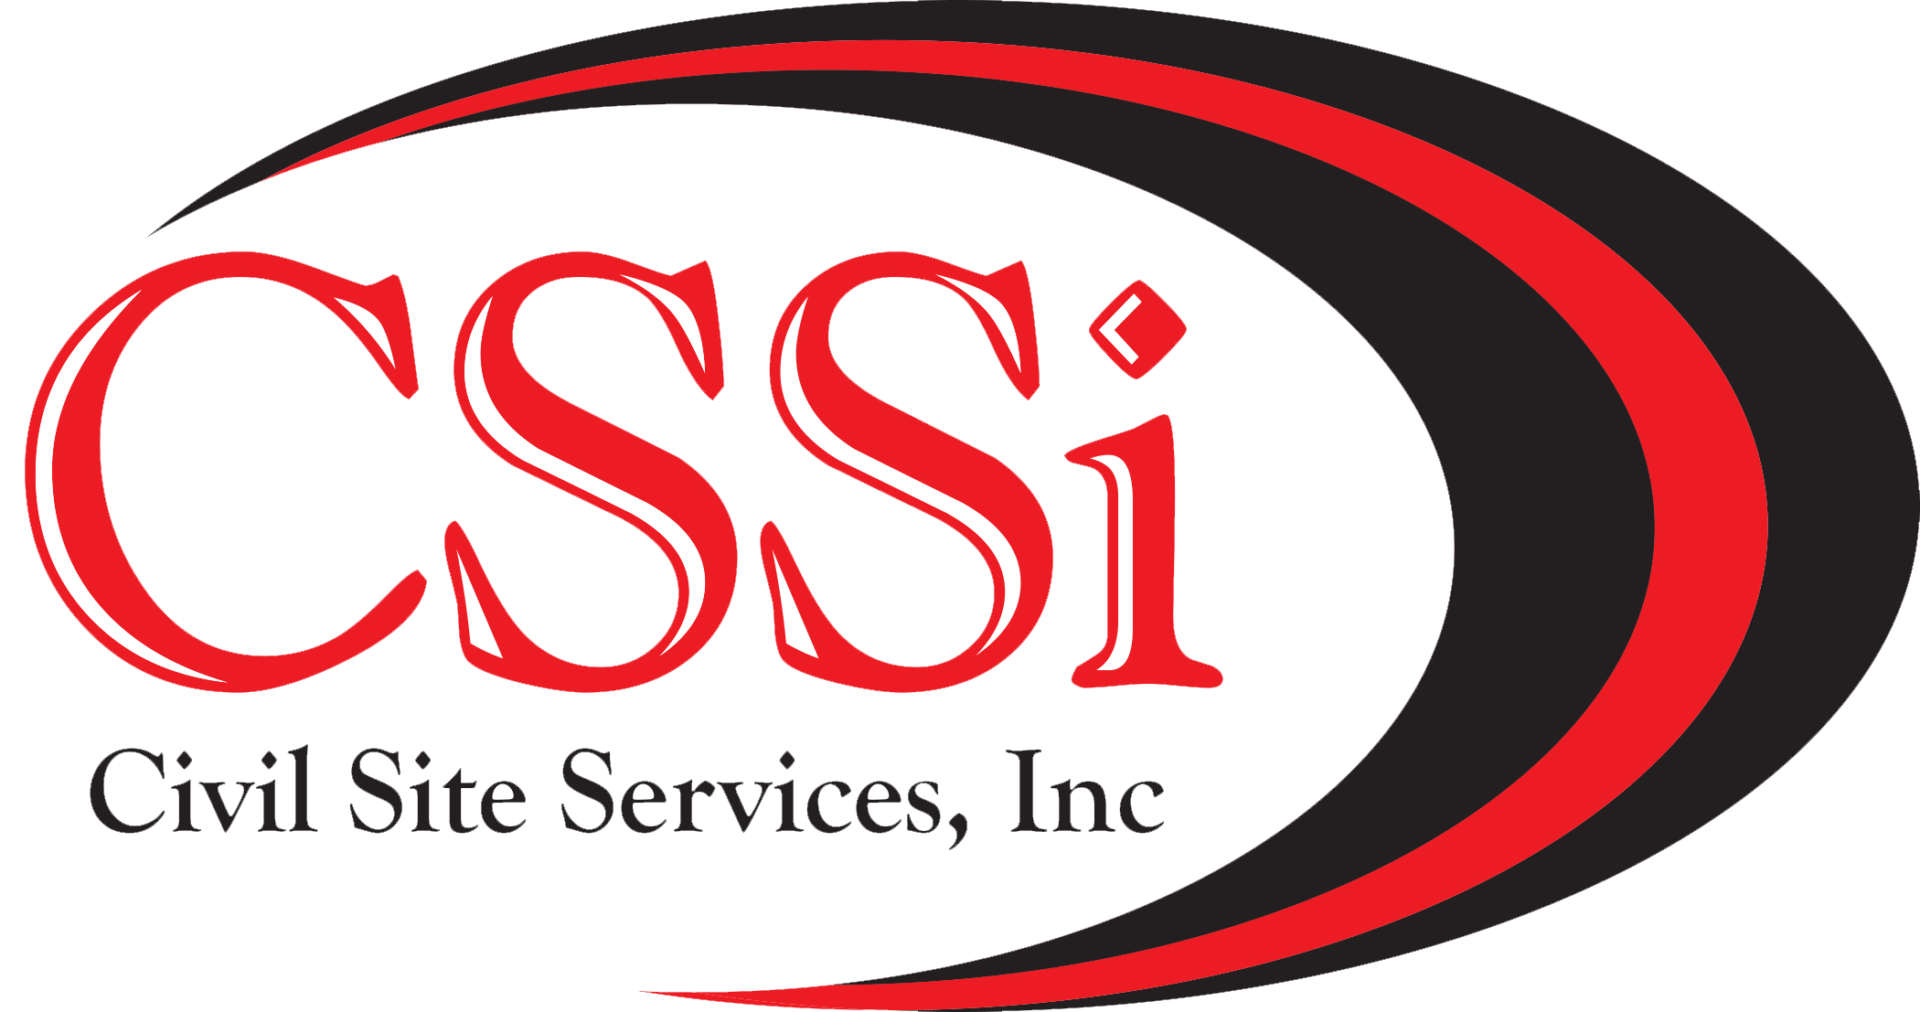 Civil Site Services, Inc